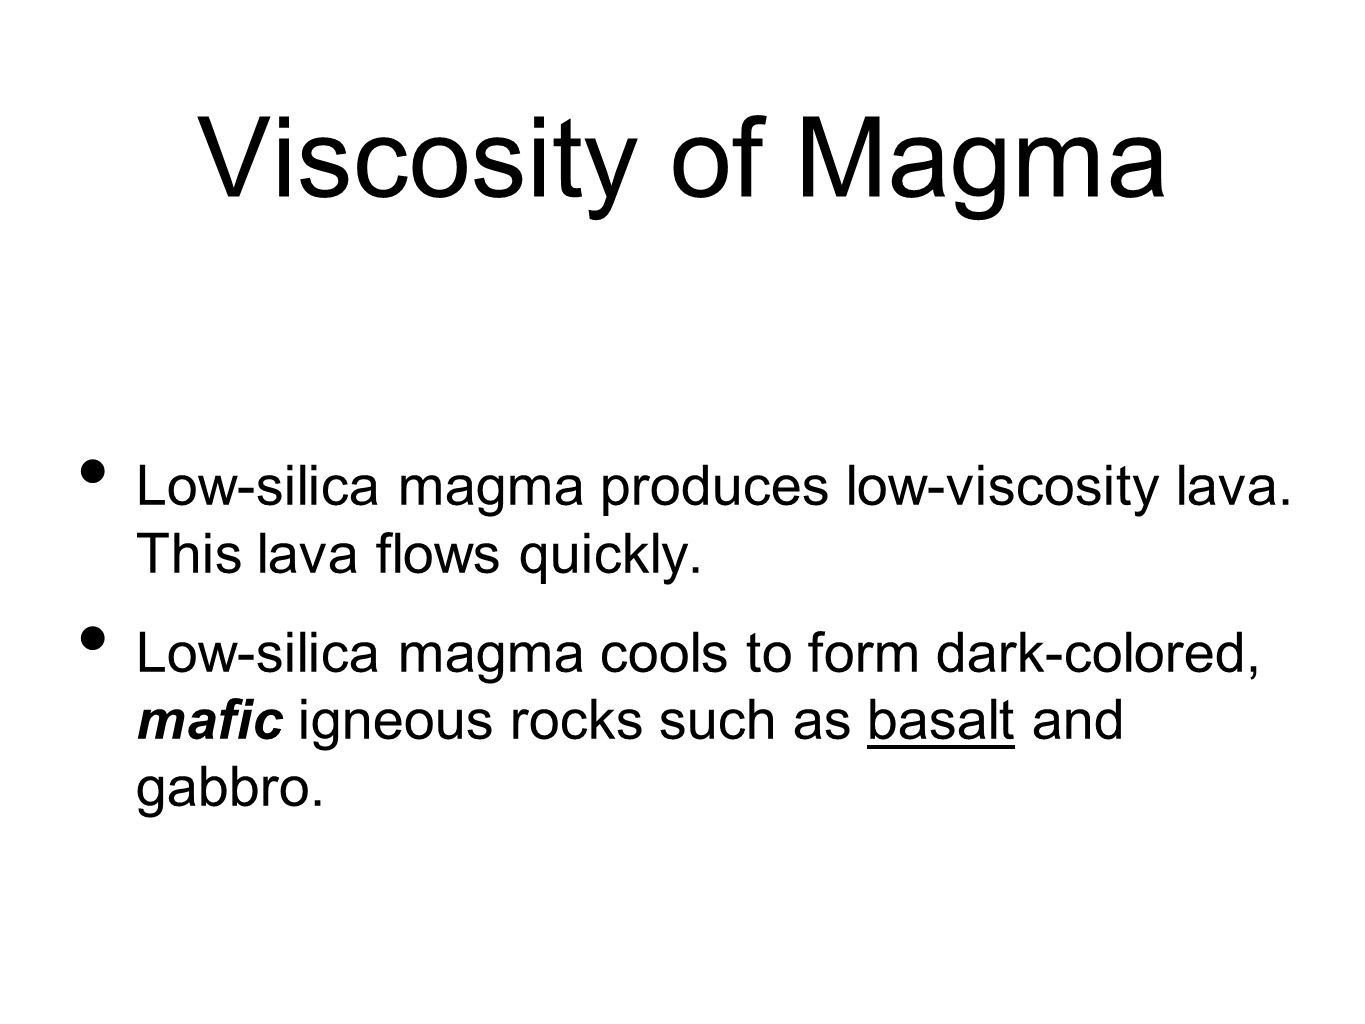 Viscosity of Magma Low-silica magma produces low-viscosity lava. This lava flows quickly.